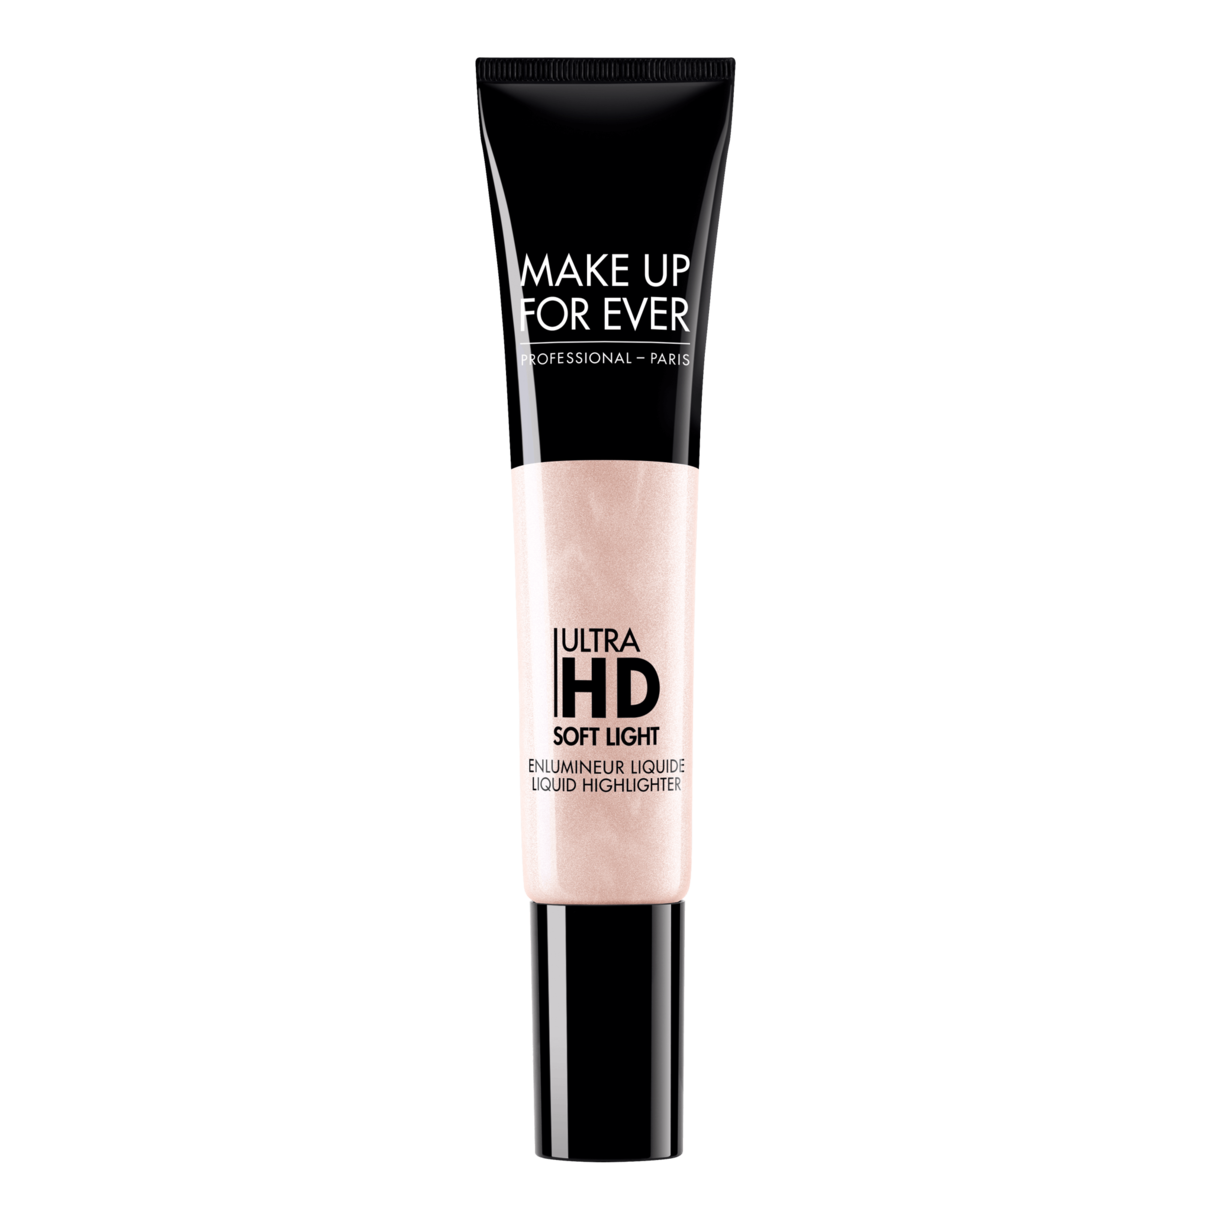 Ultra HD Soft Light Pink Champagne Liquid Highlighter